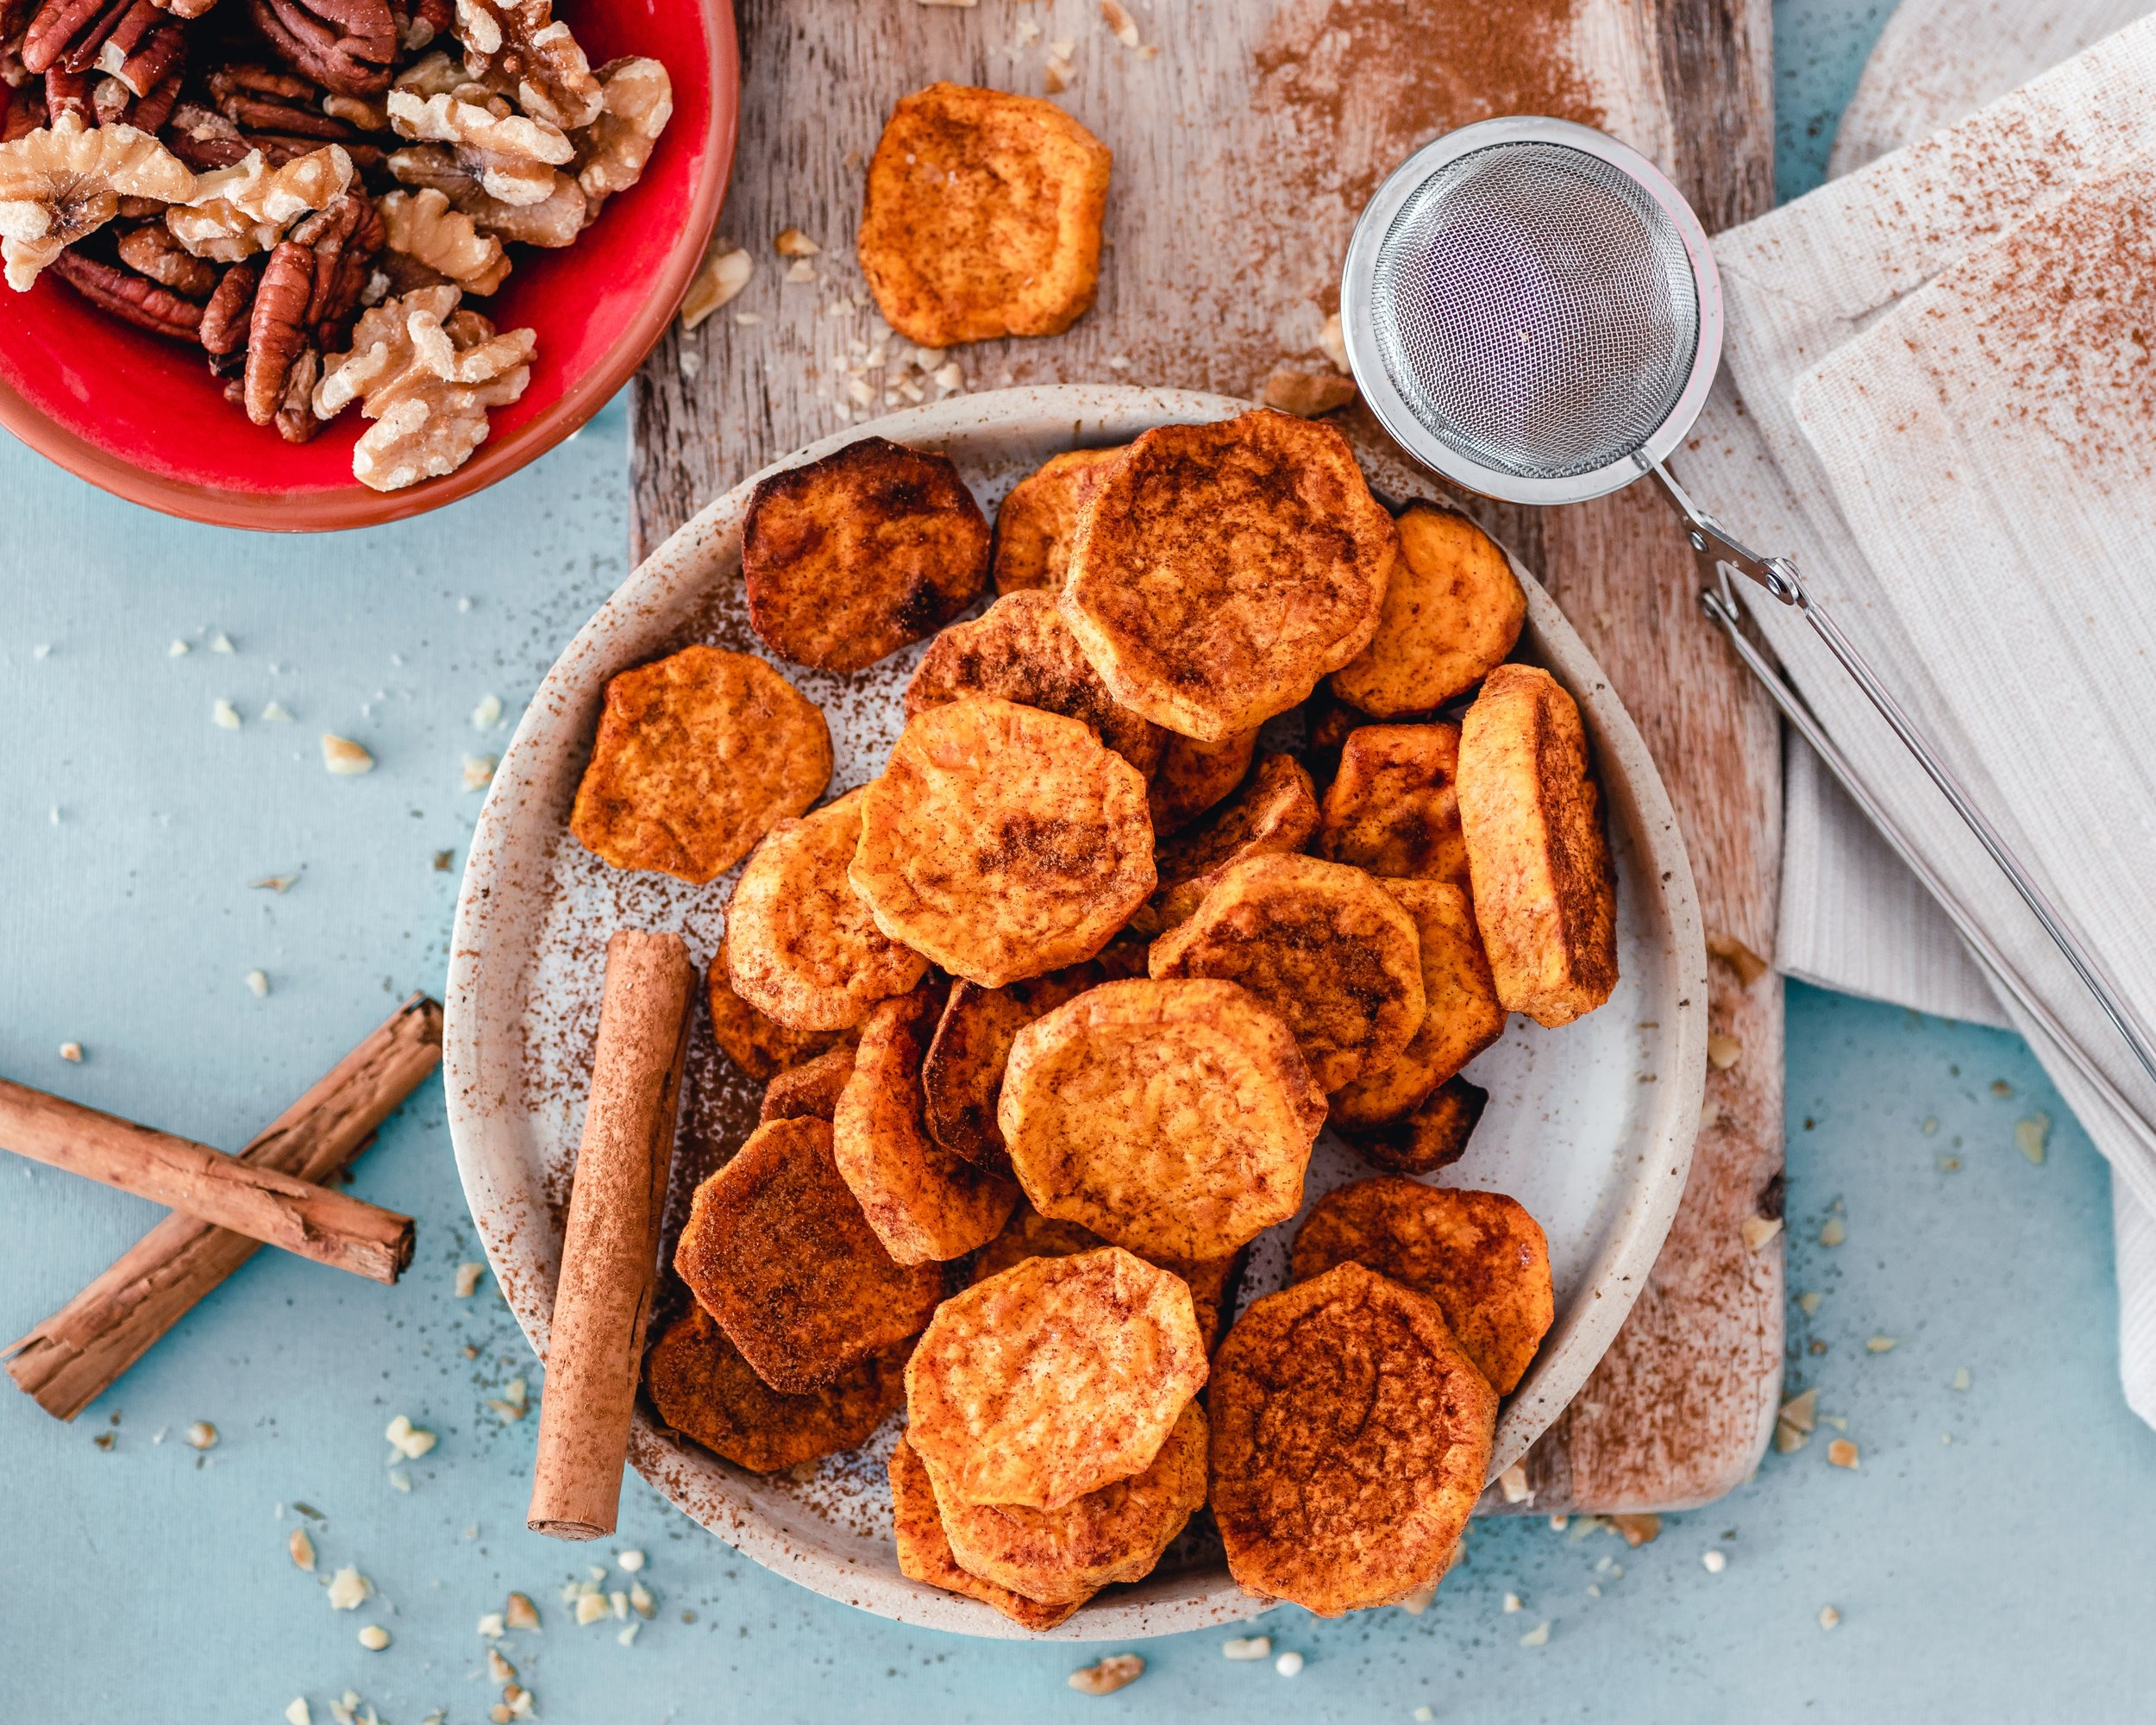 Sweet Potato - I love sweet potatoes and could eat them daily- but I am aware that most people crave this root vegetable in the fall and winter as temperatures decrease. They are super packed with nutrients and are a lovely addition to any diet, and yes they go great in smoothies you just have to be privy to a winning combination.